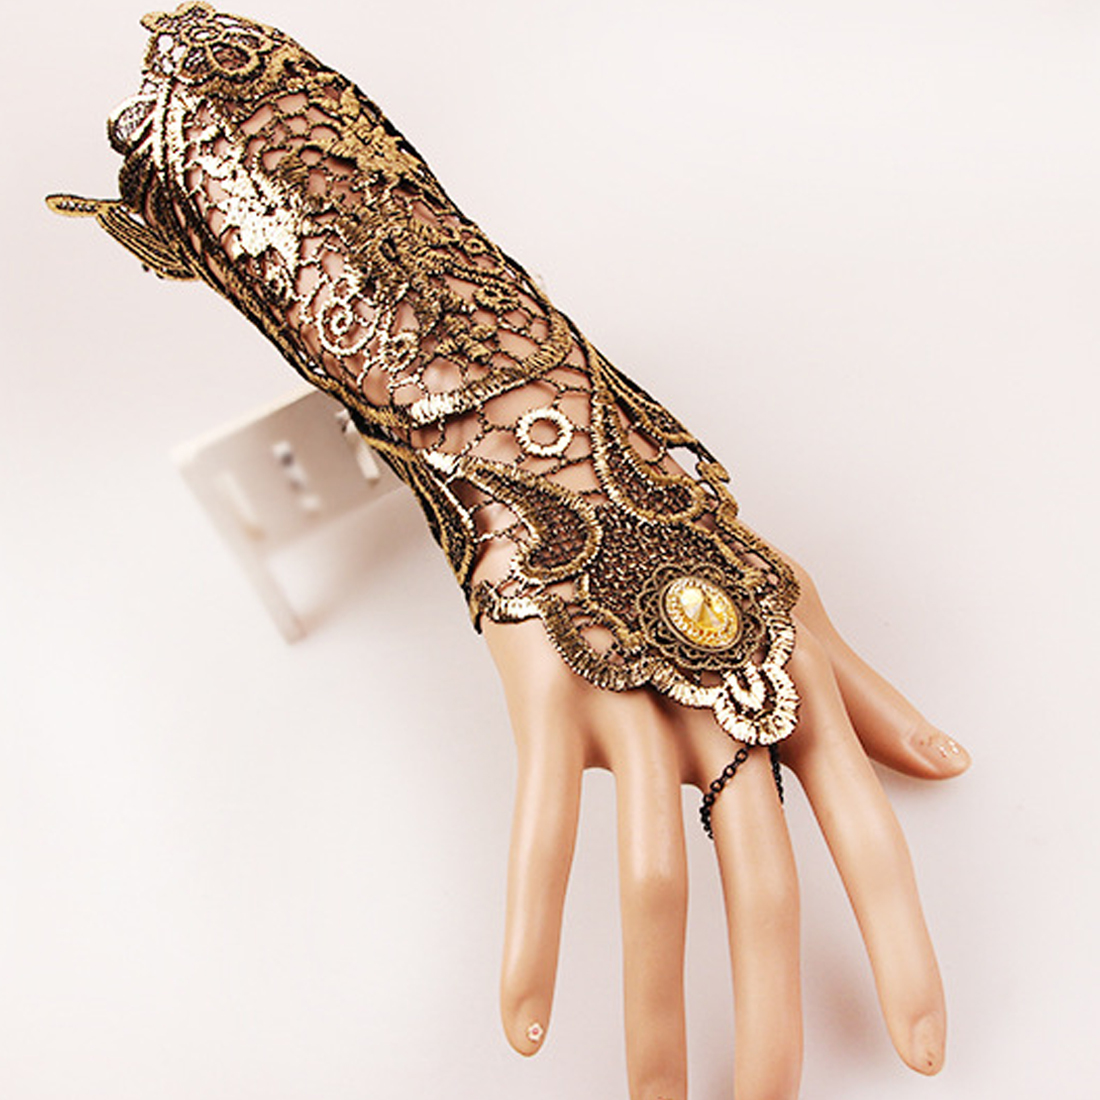 Top Sell 1 Pc Women Ladies Steampunk Style Lace Fingerless Long Gloves Lace Hollow-Out Chain Bracelet Gloves Party Costume